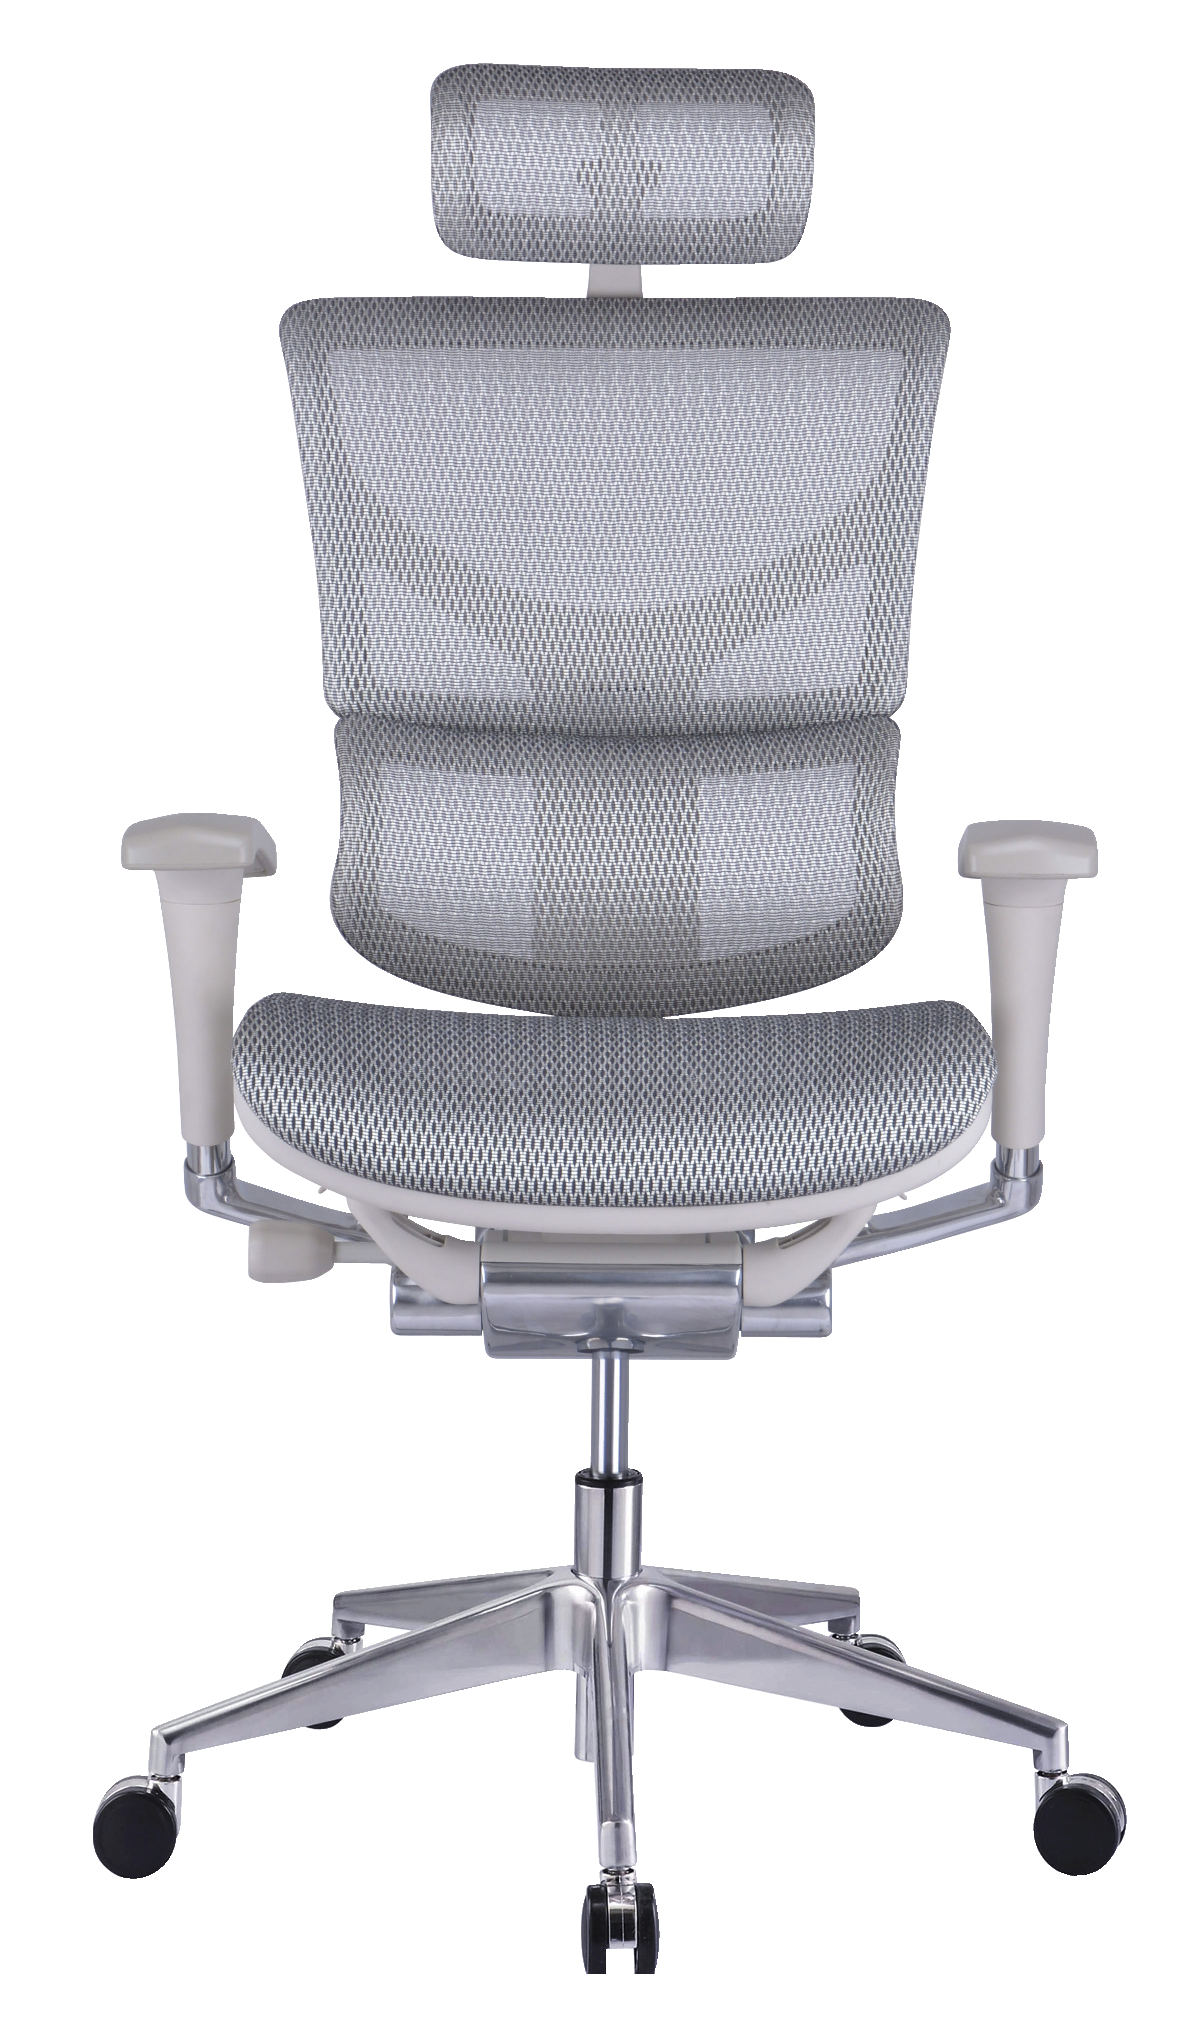 stationery office chair